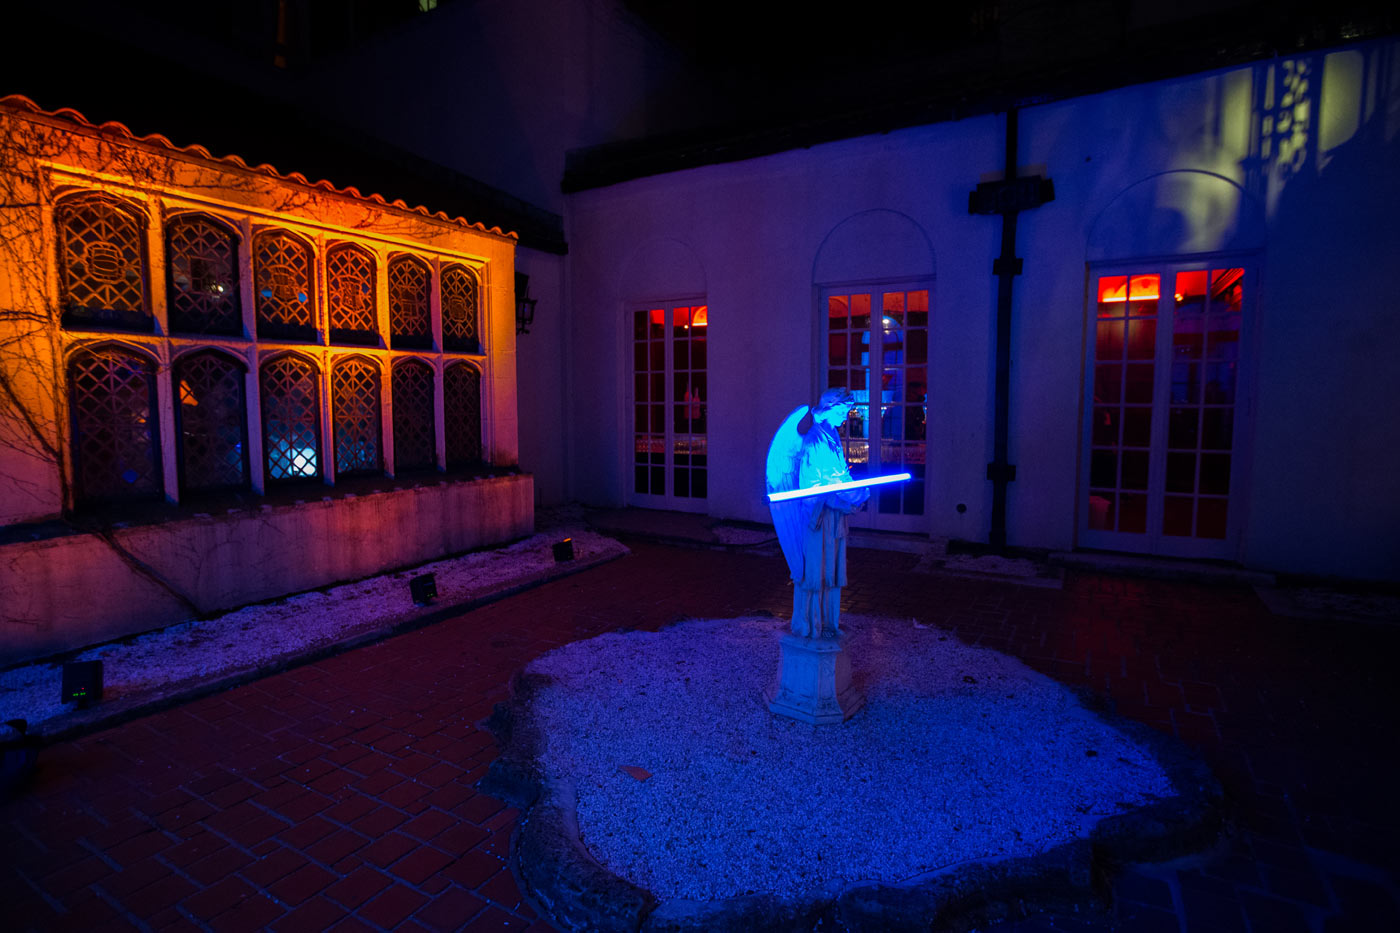 Ambient Lighting for interior courtyard